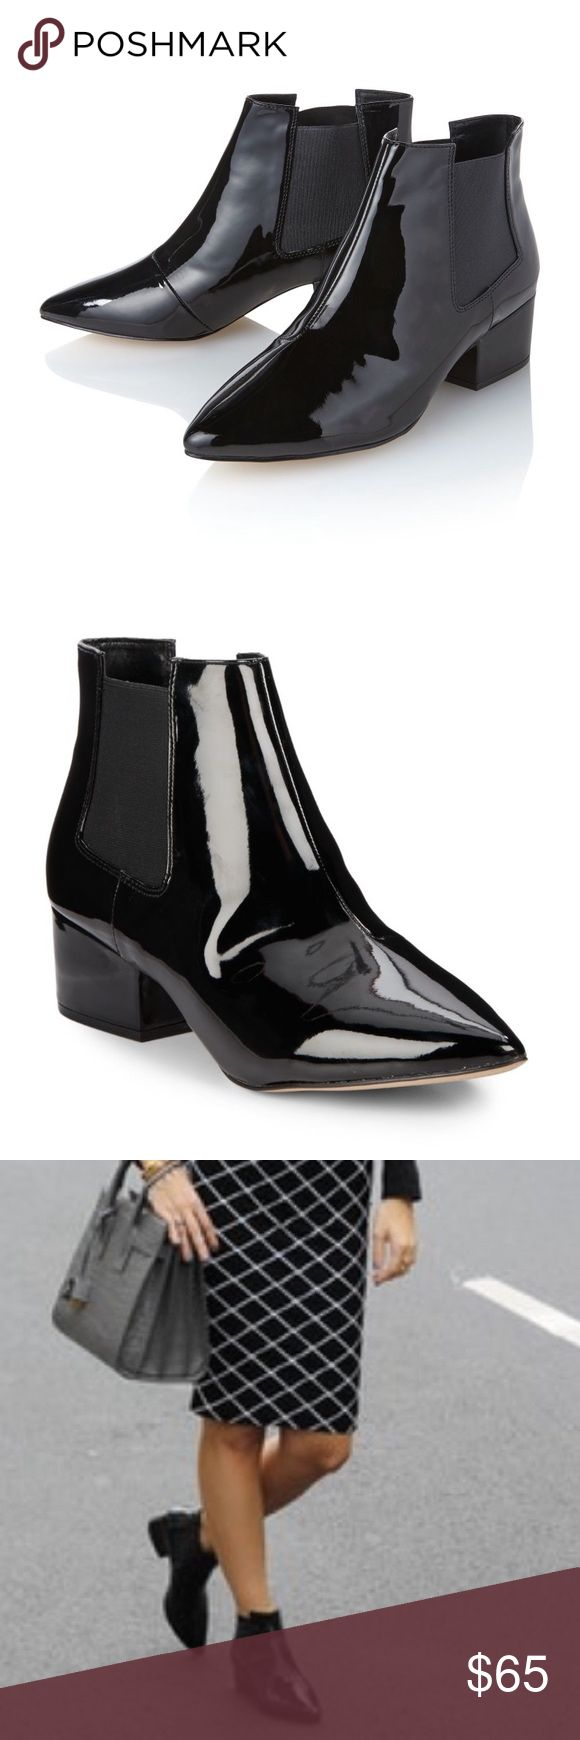 French Connection Ronan Boots Patent-finish Chelsea boots. These offer a dose of British cool kid to any outfit. Will post pics of actual boots this week! French Connection Shoes Ankle Boots & Booties